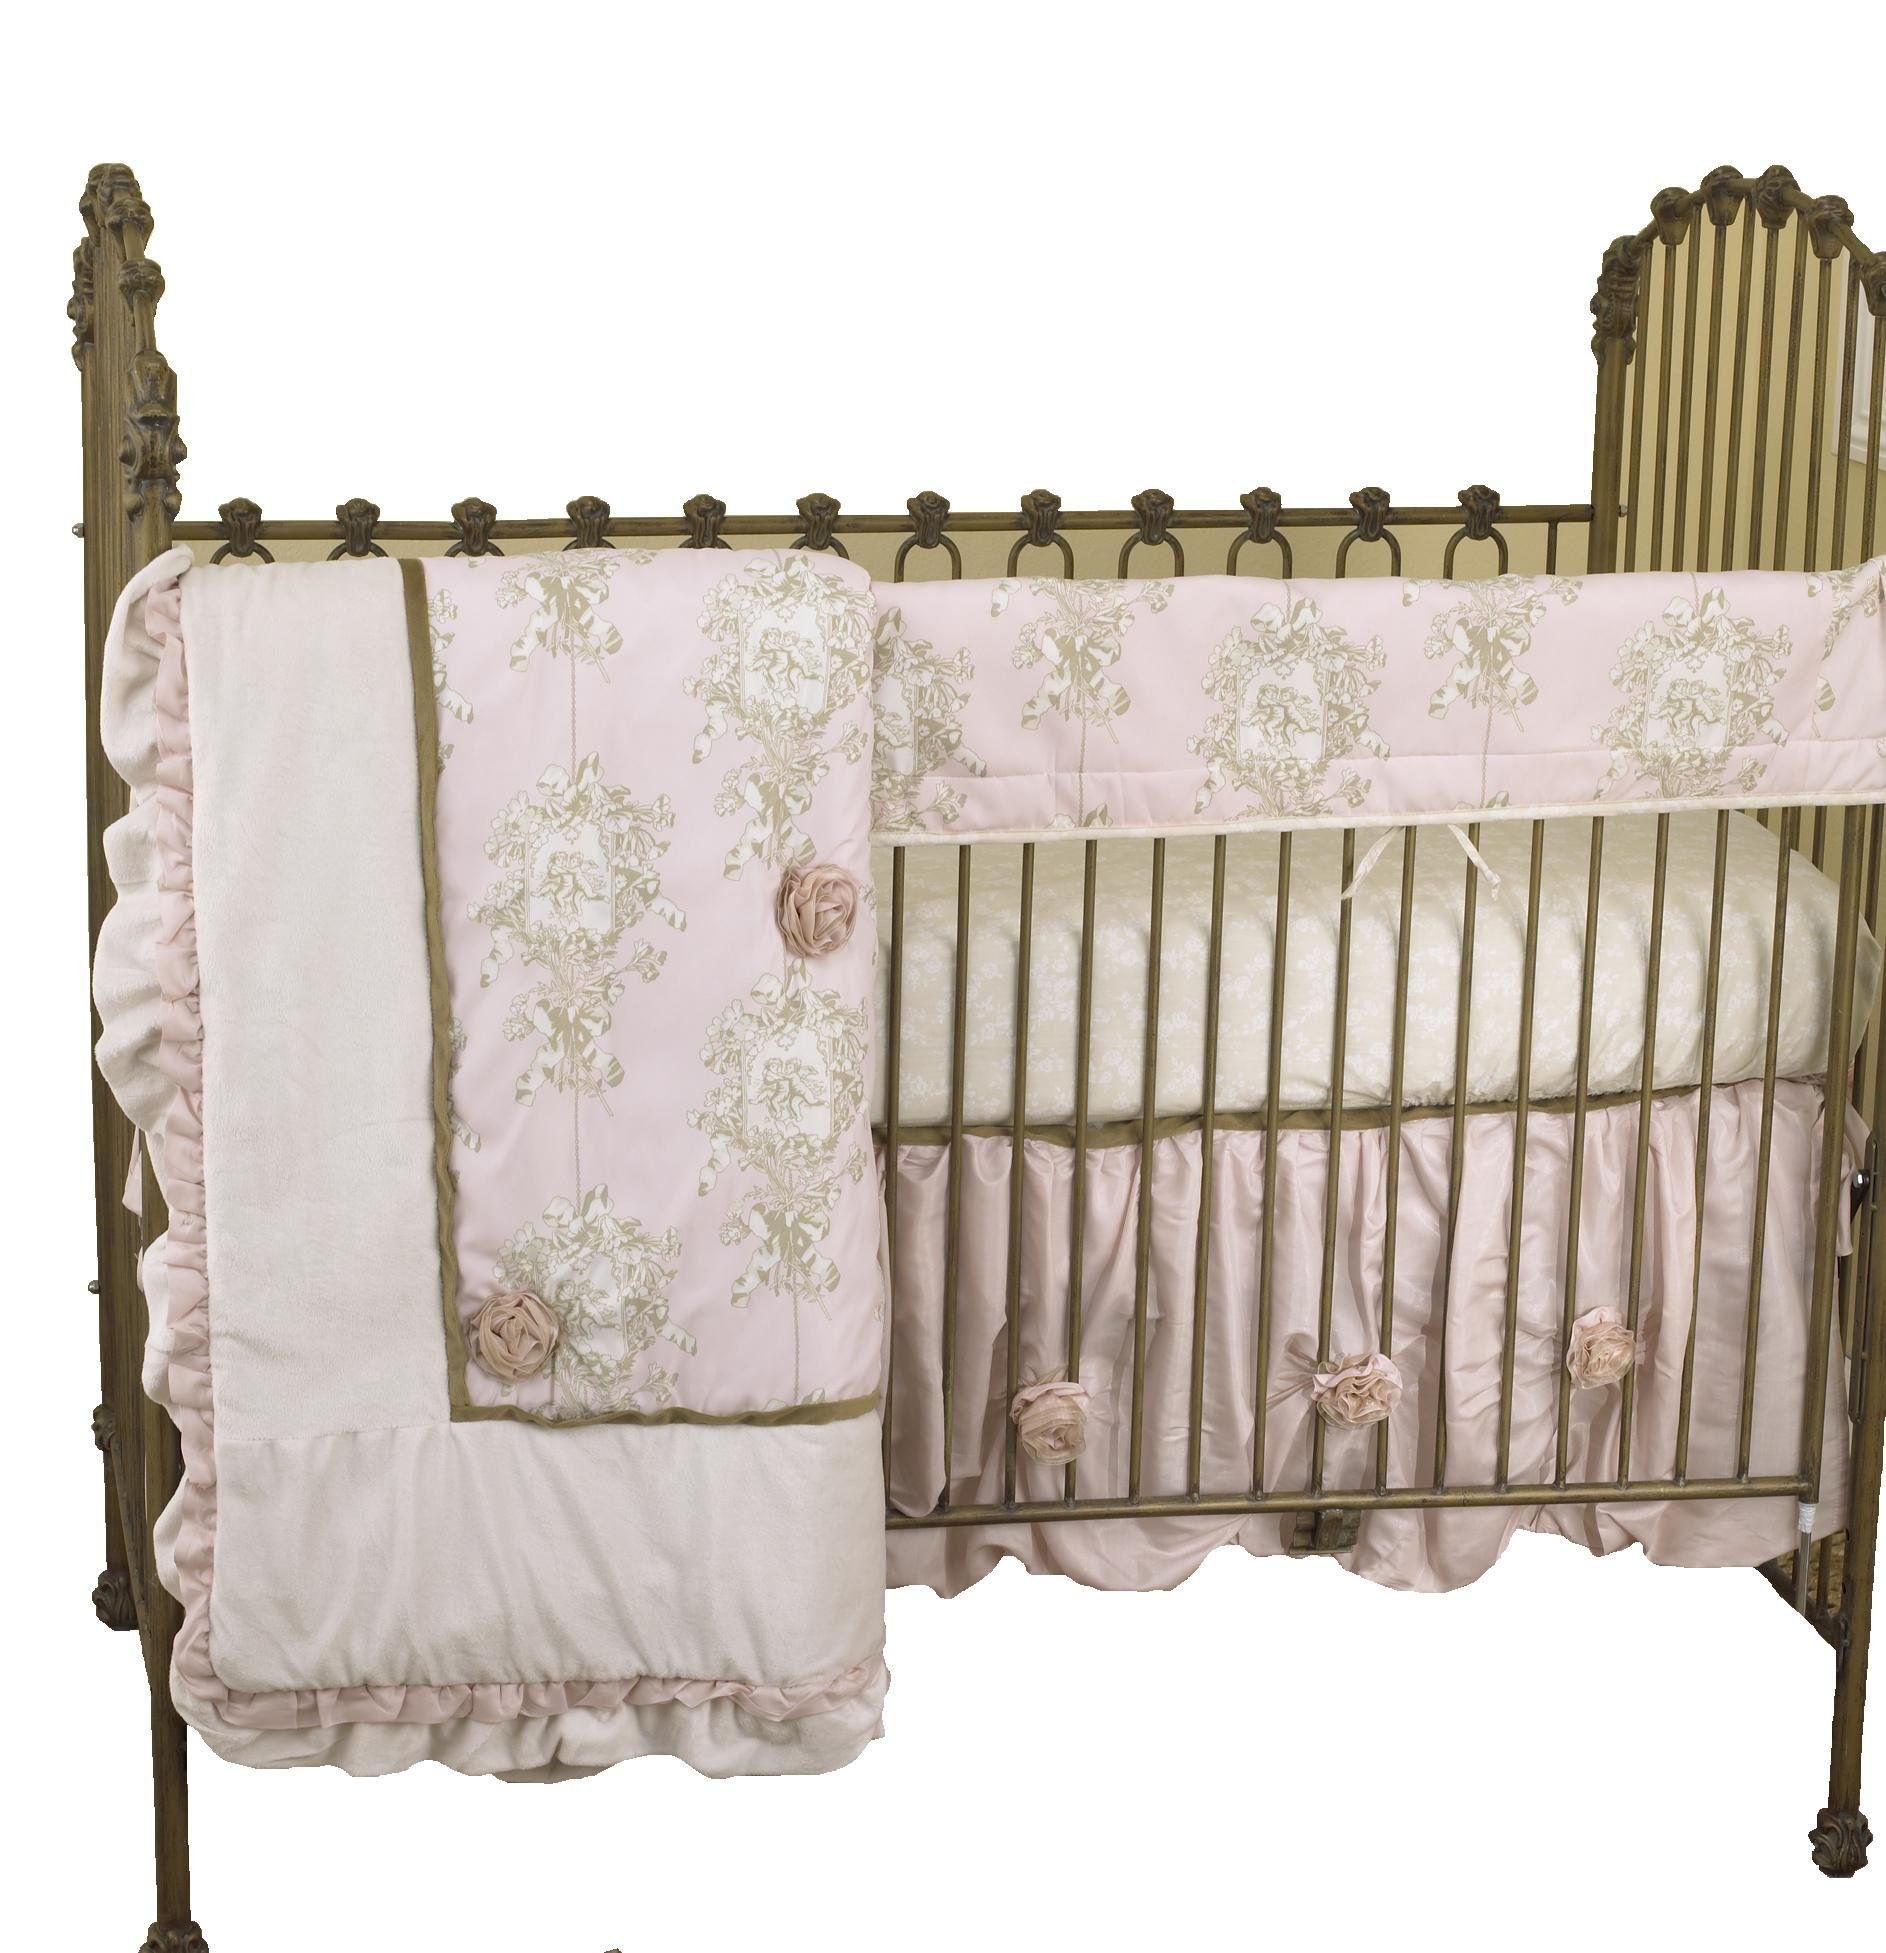 Cotton Tale Designs Front Crib Rail Cover Up Set, Lollipops & Roses